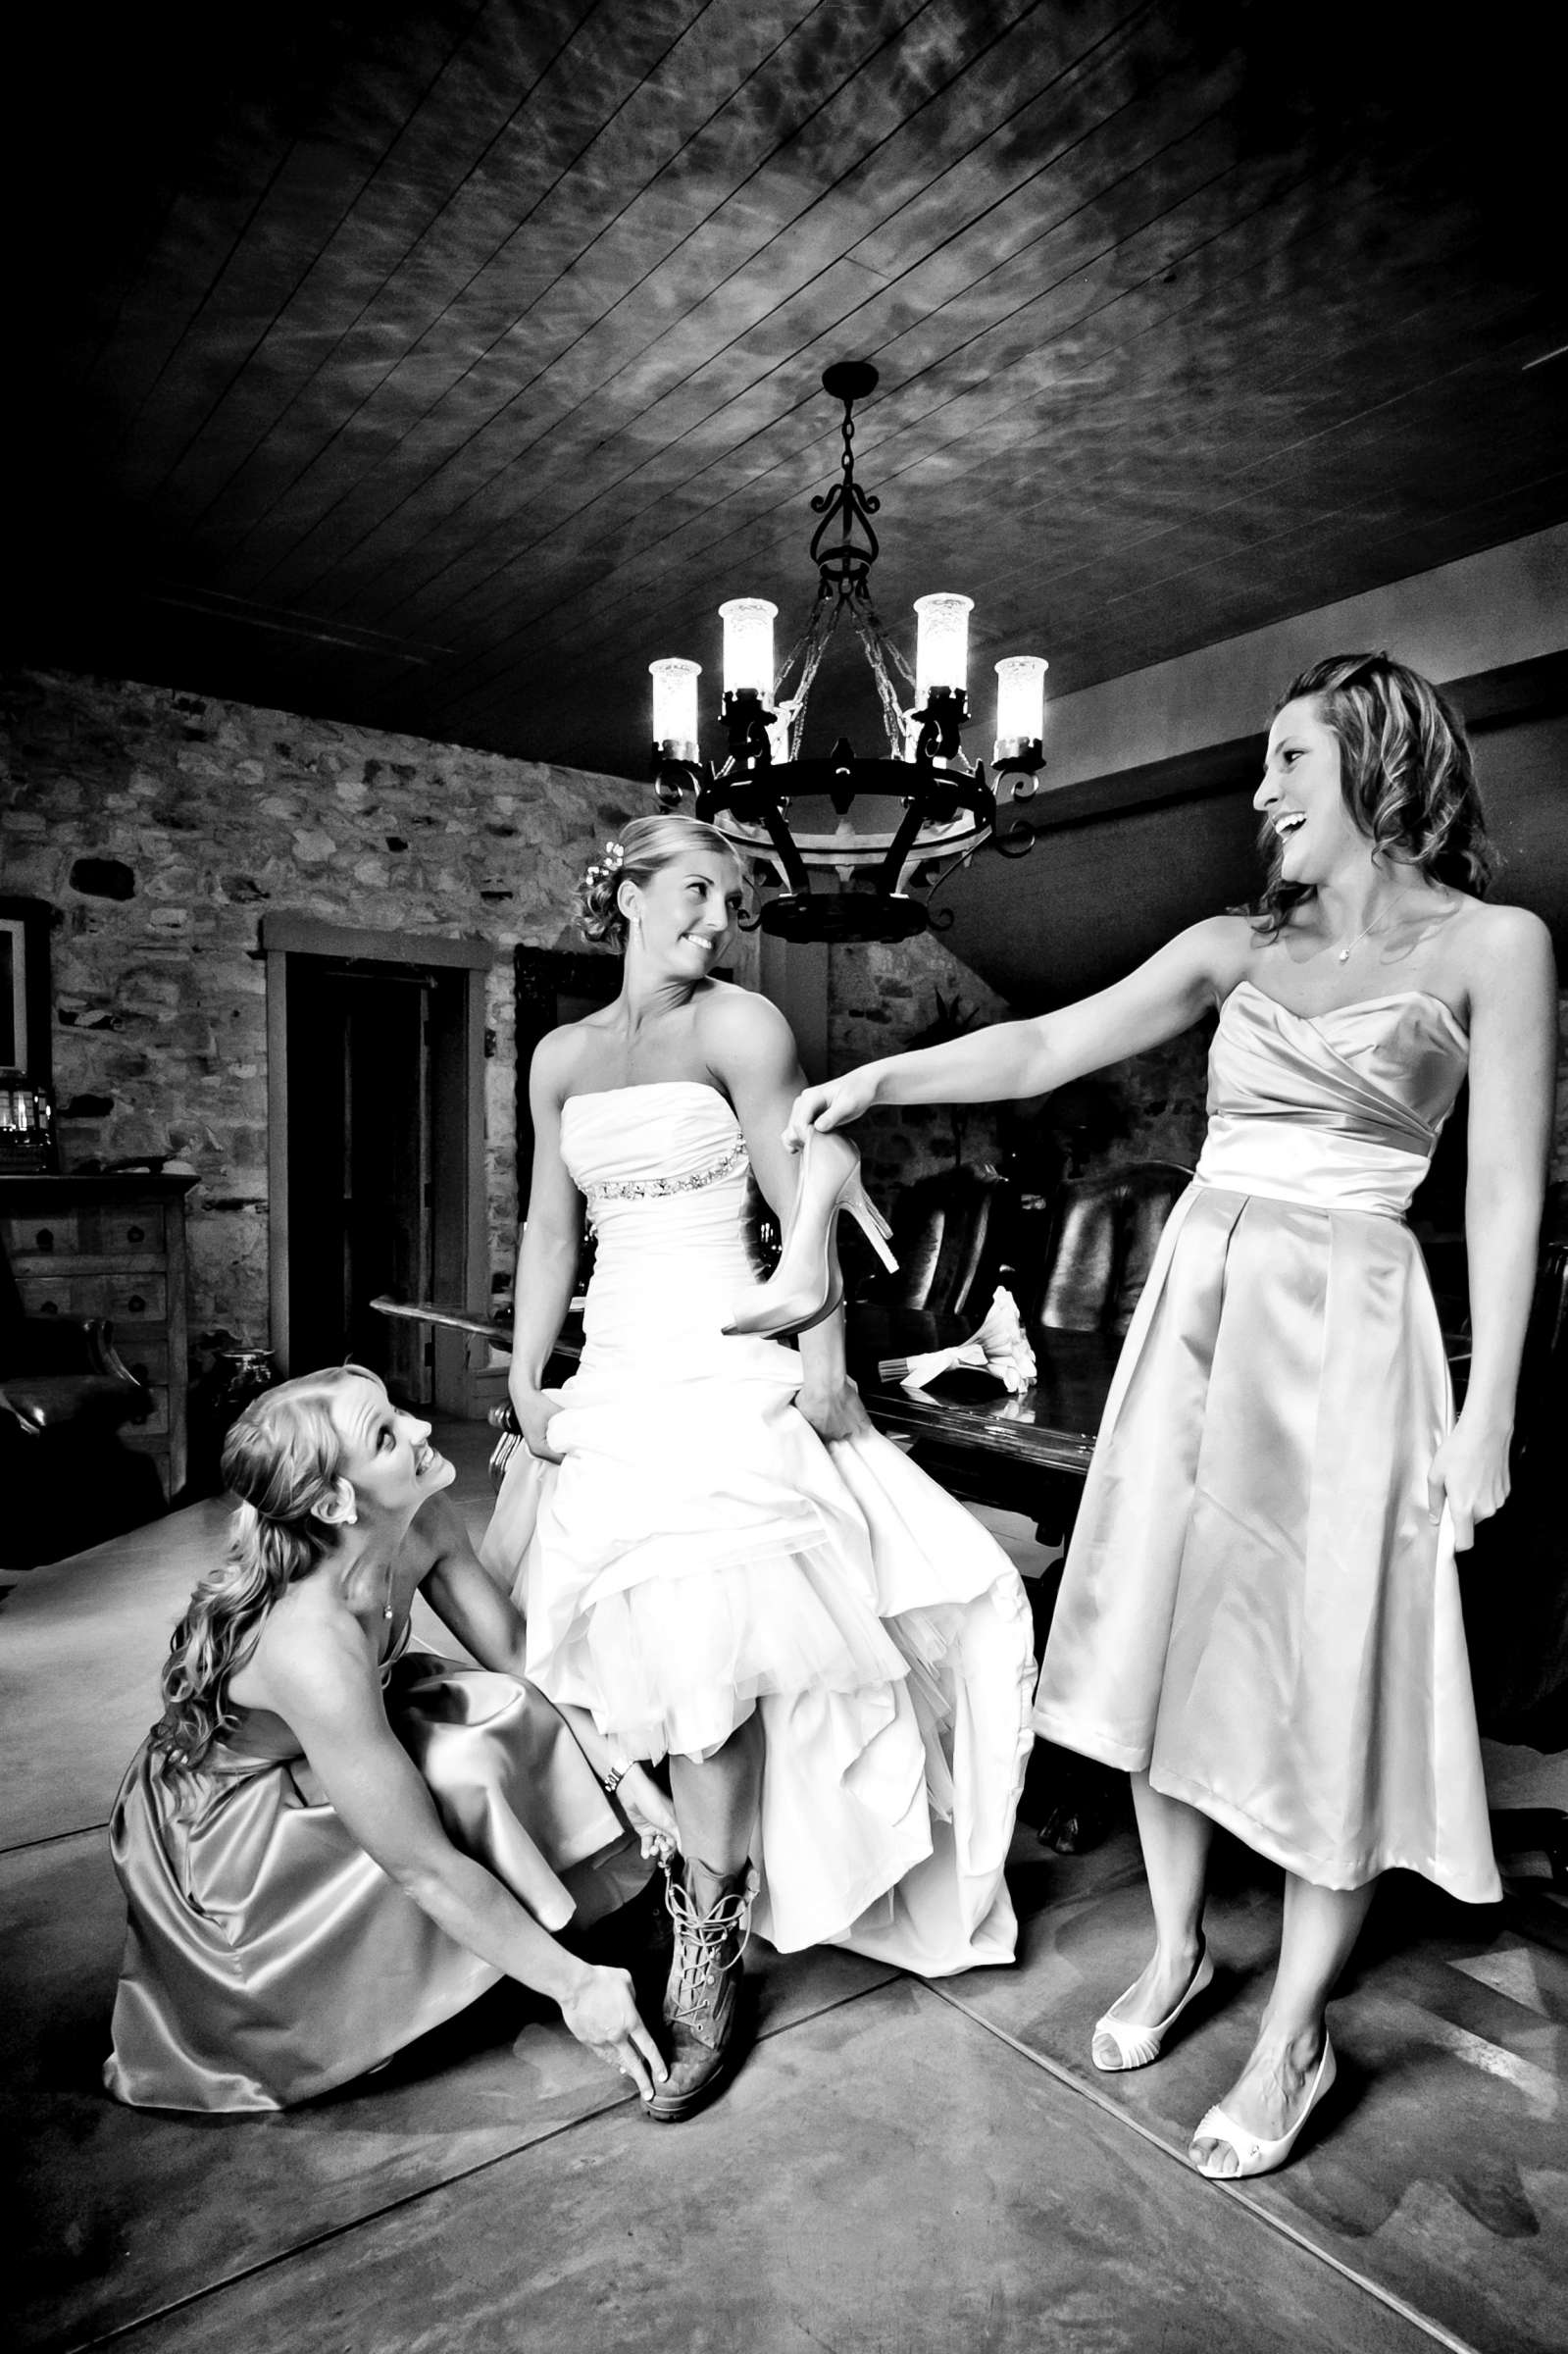 Holman Ranch Wedding, Kaley and Jason Wedding Photo #356246 by True Photography